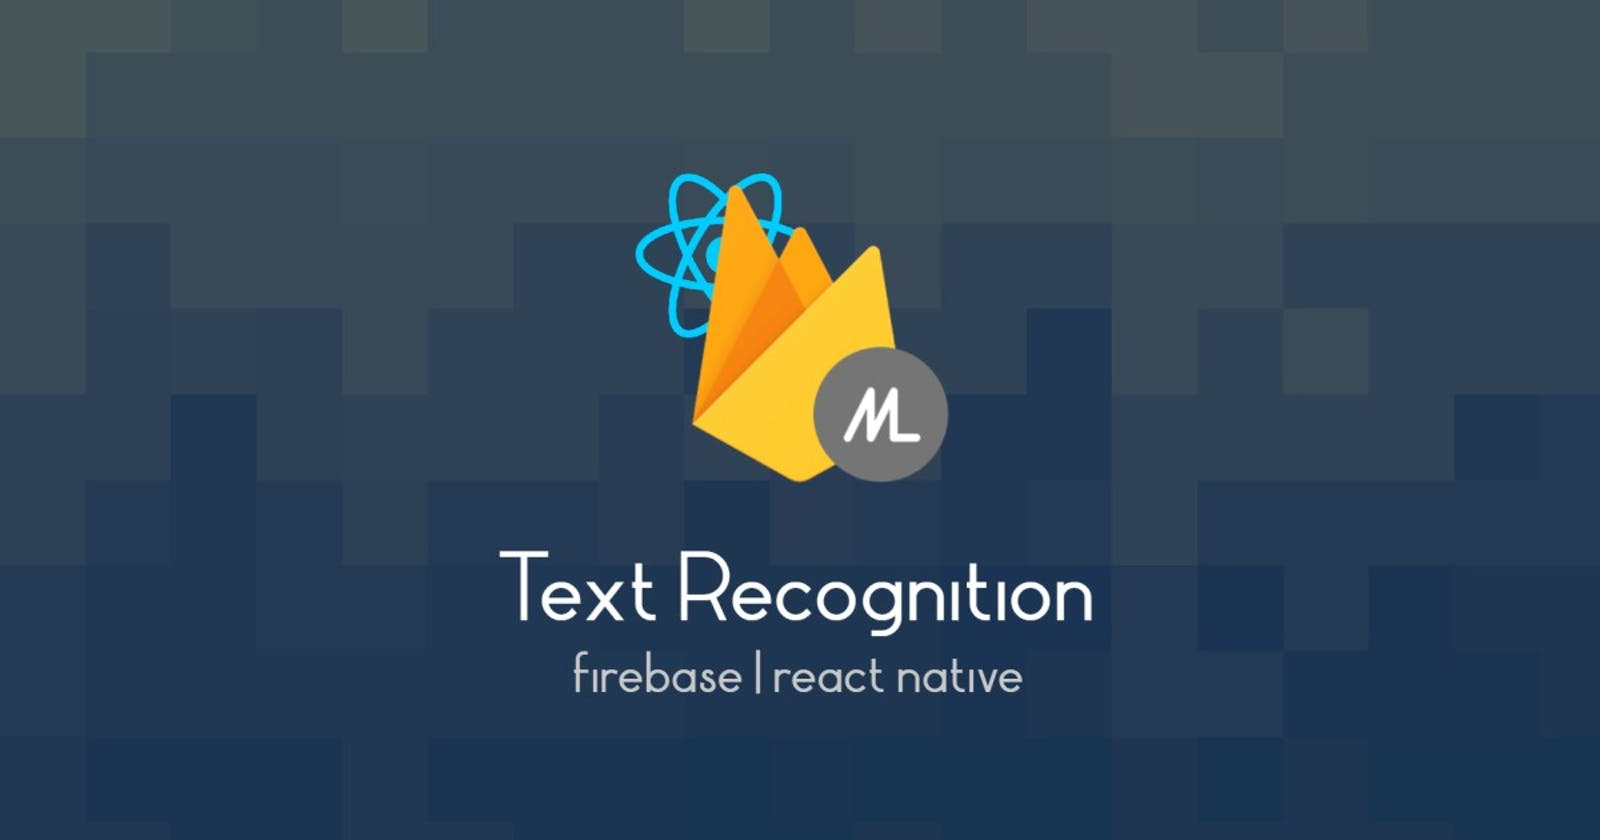 Text Recognition using Firebase ML in React Native